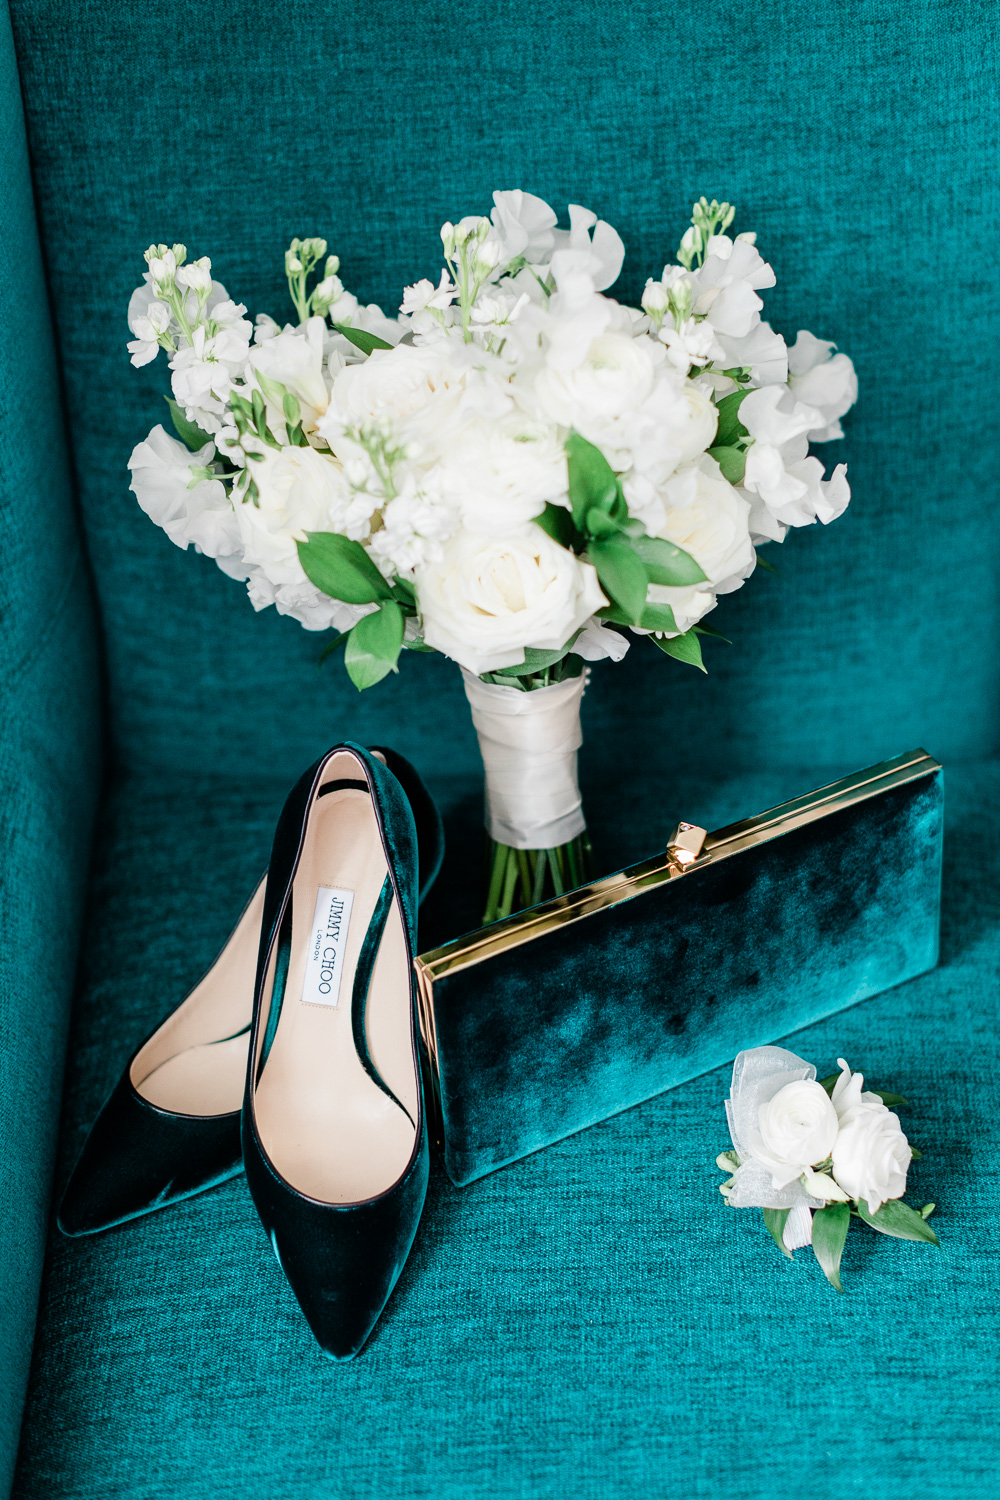 Emerald color jimmy choo shoes and clutch